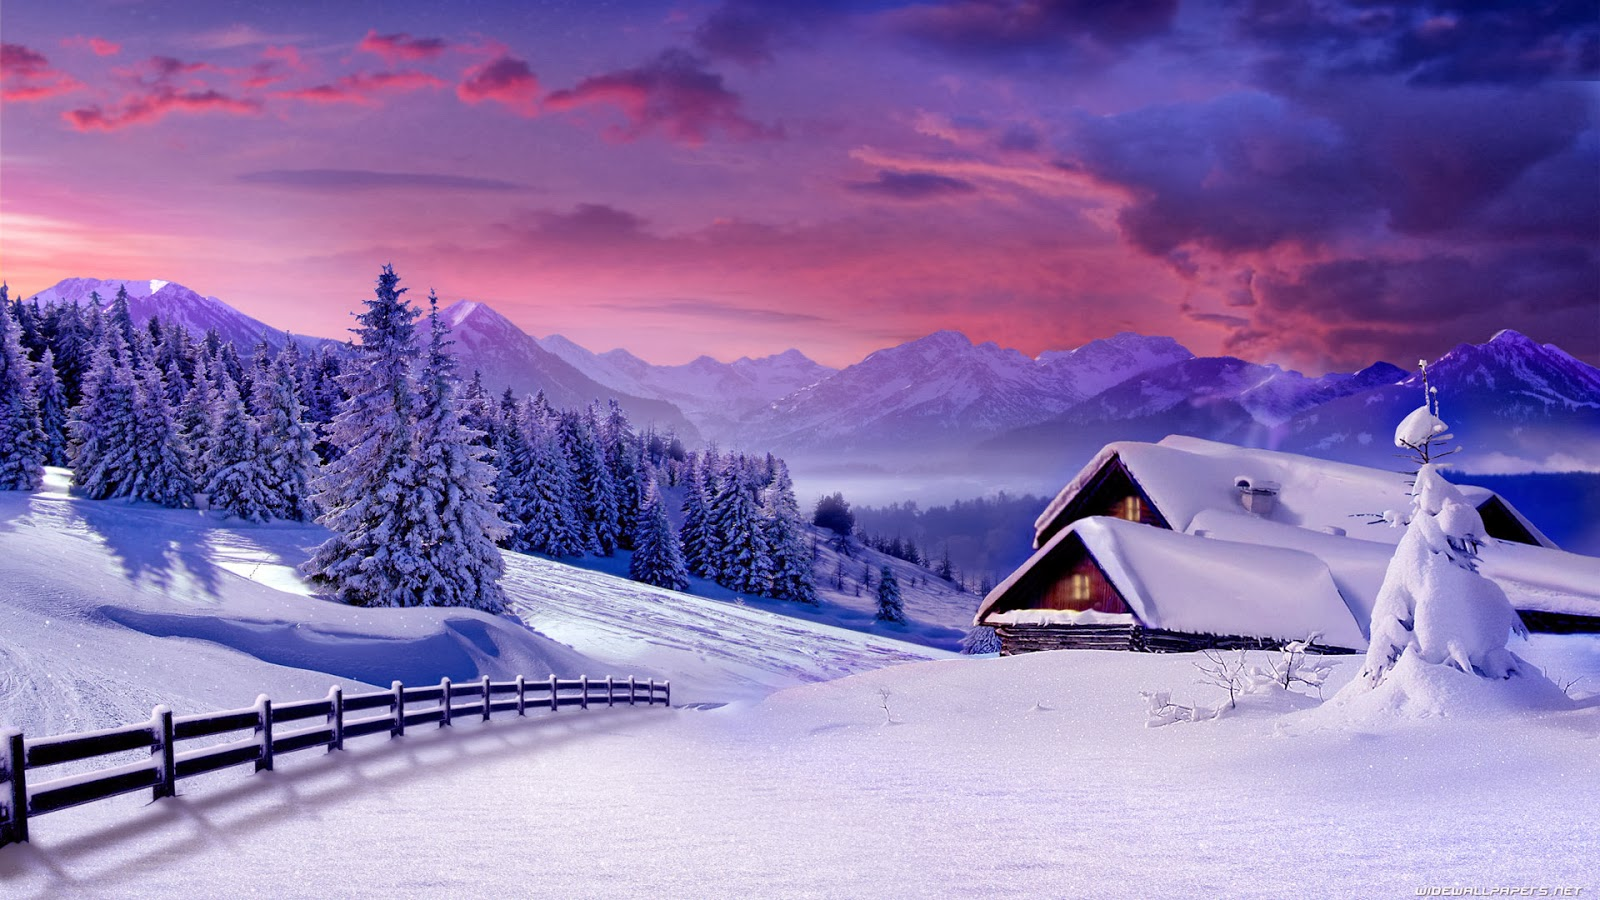 Winter Wallpaper Scenes Winter Scenes Wallpapers Backgrounds